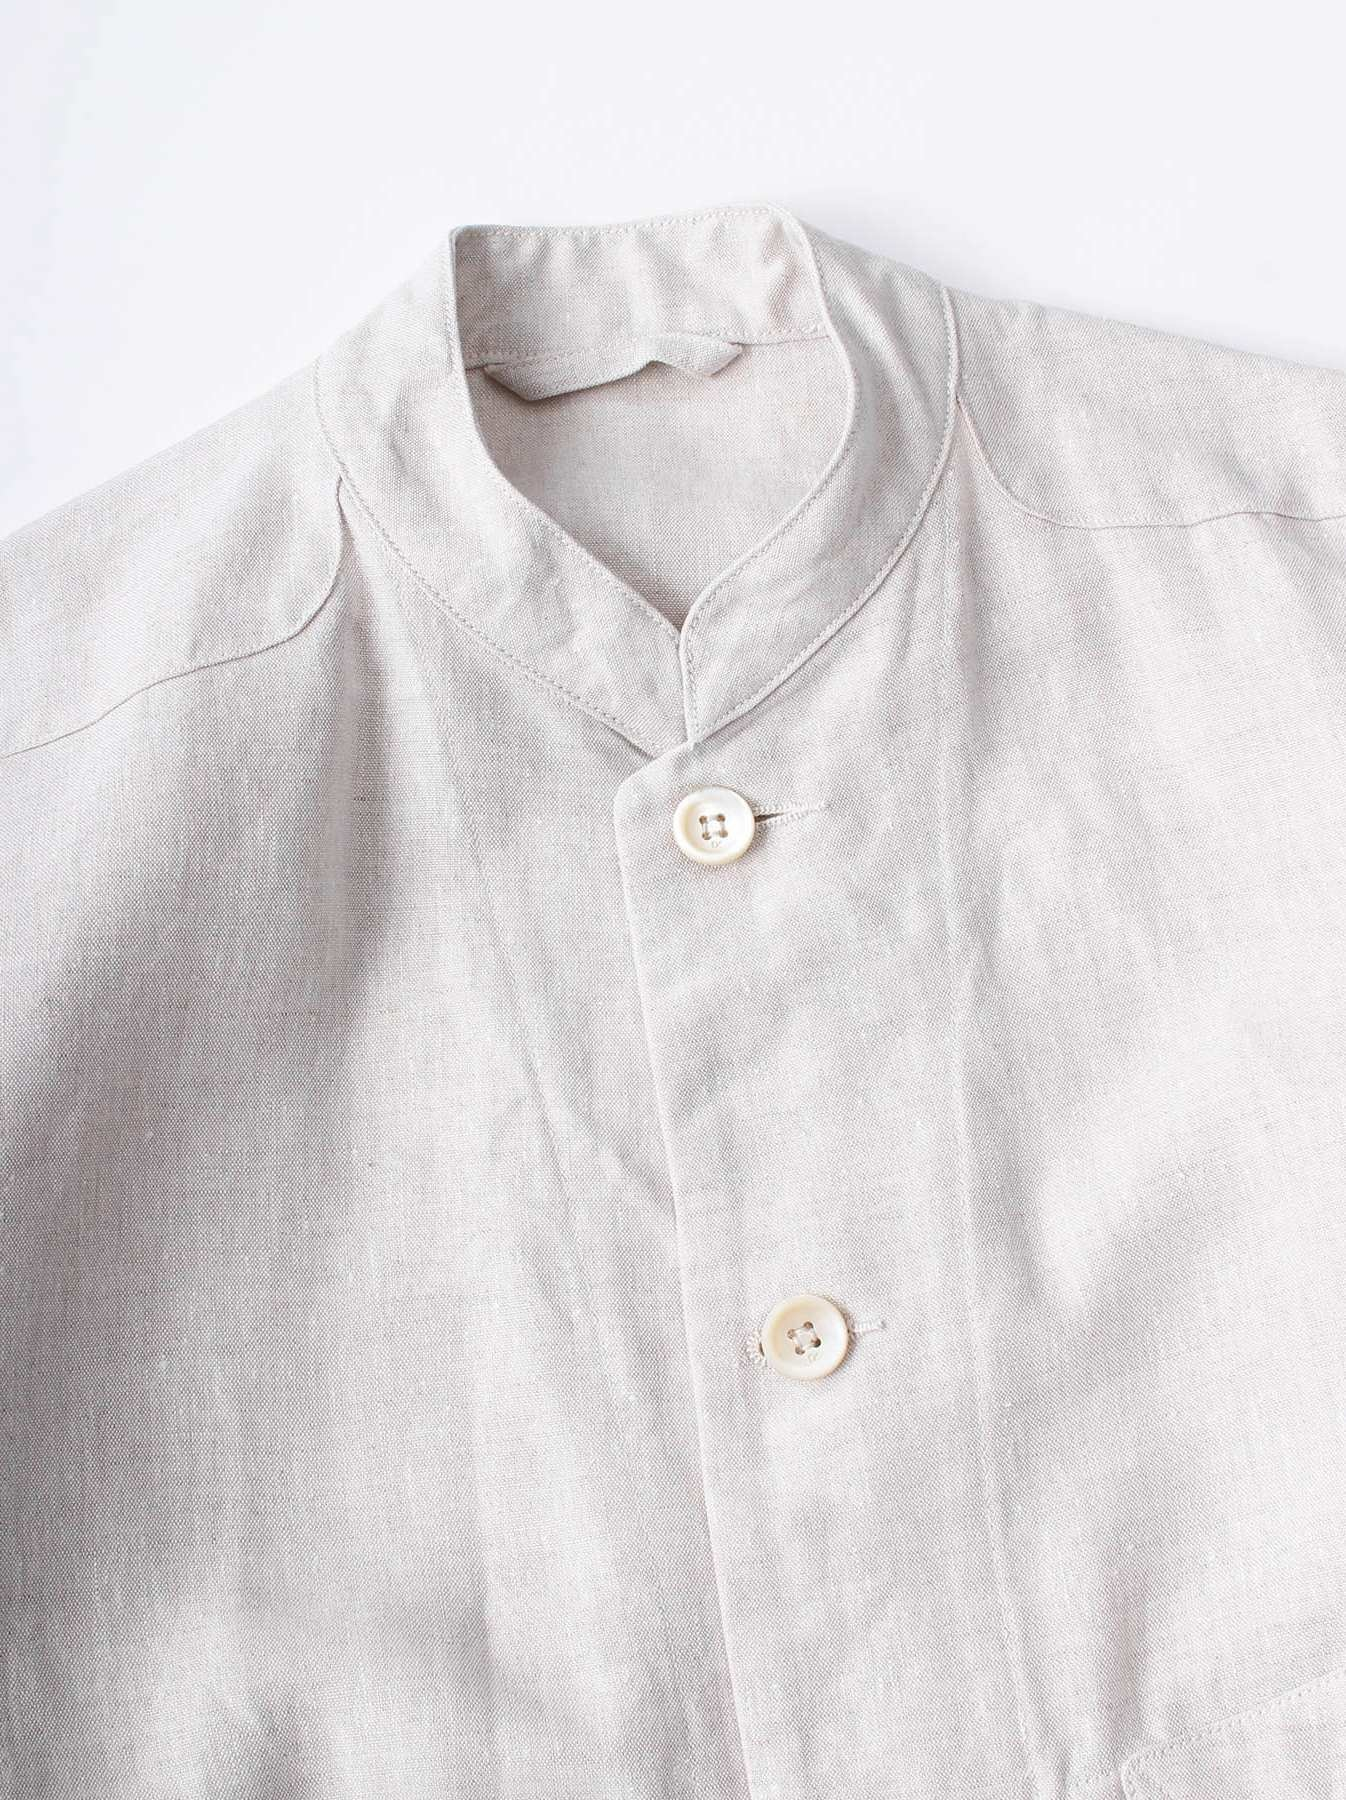 WH Linen Stand Collar Jacket-6